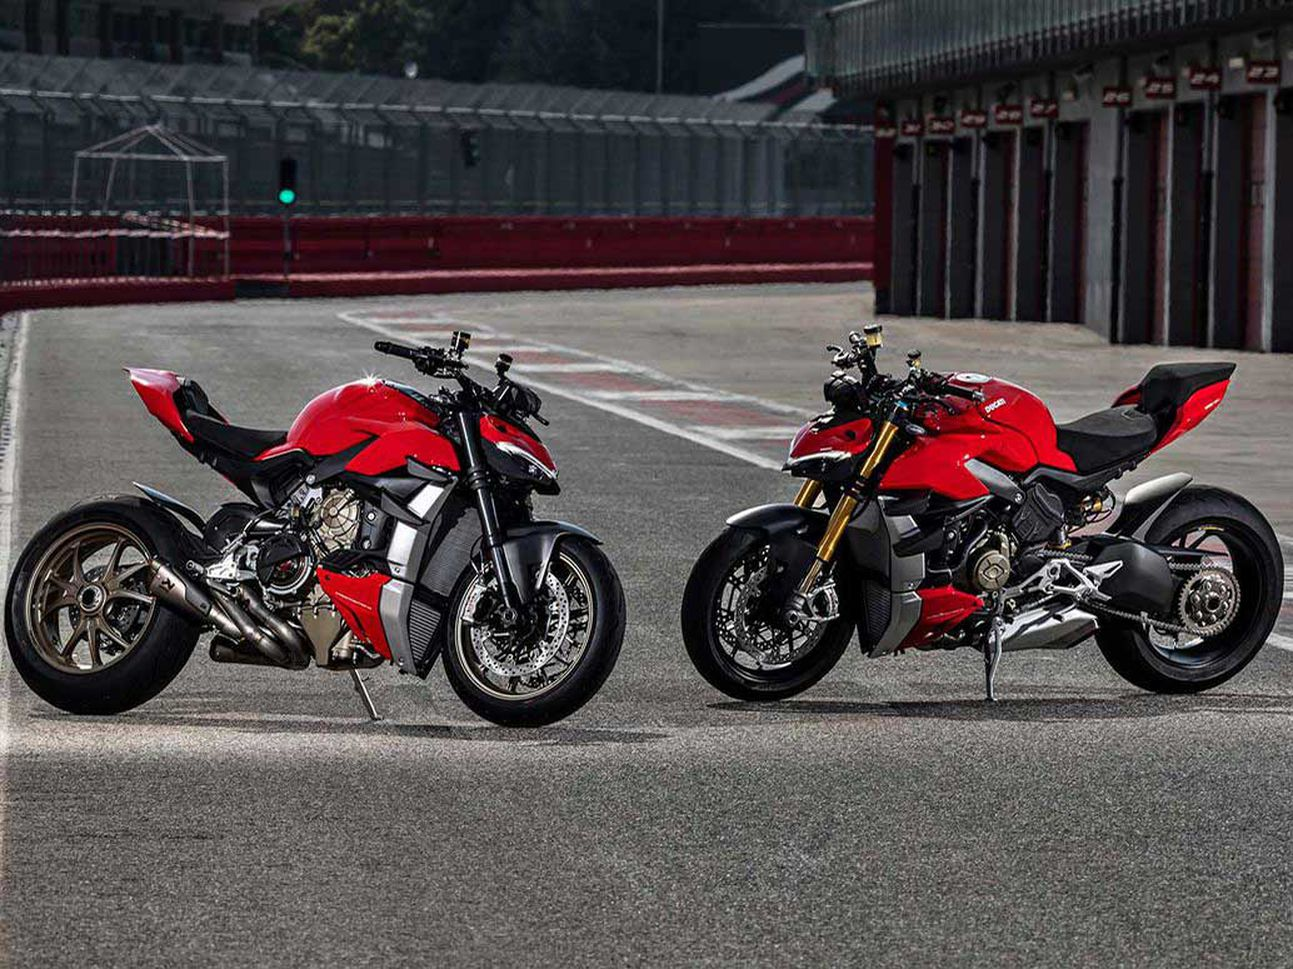 The new Ducati Streetfighter V4 promises to be a massively enjoyable machine.